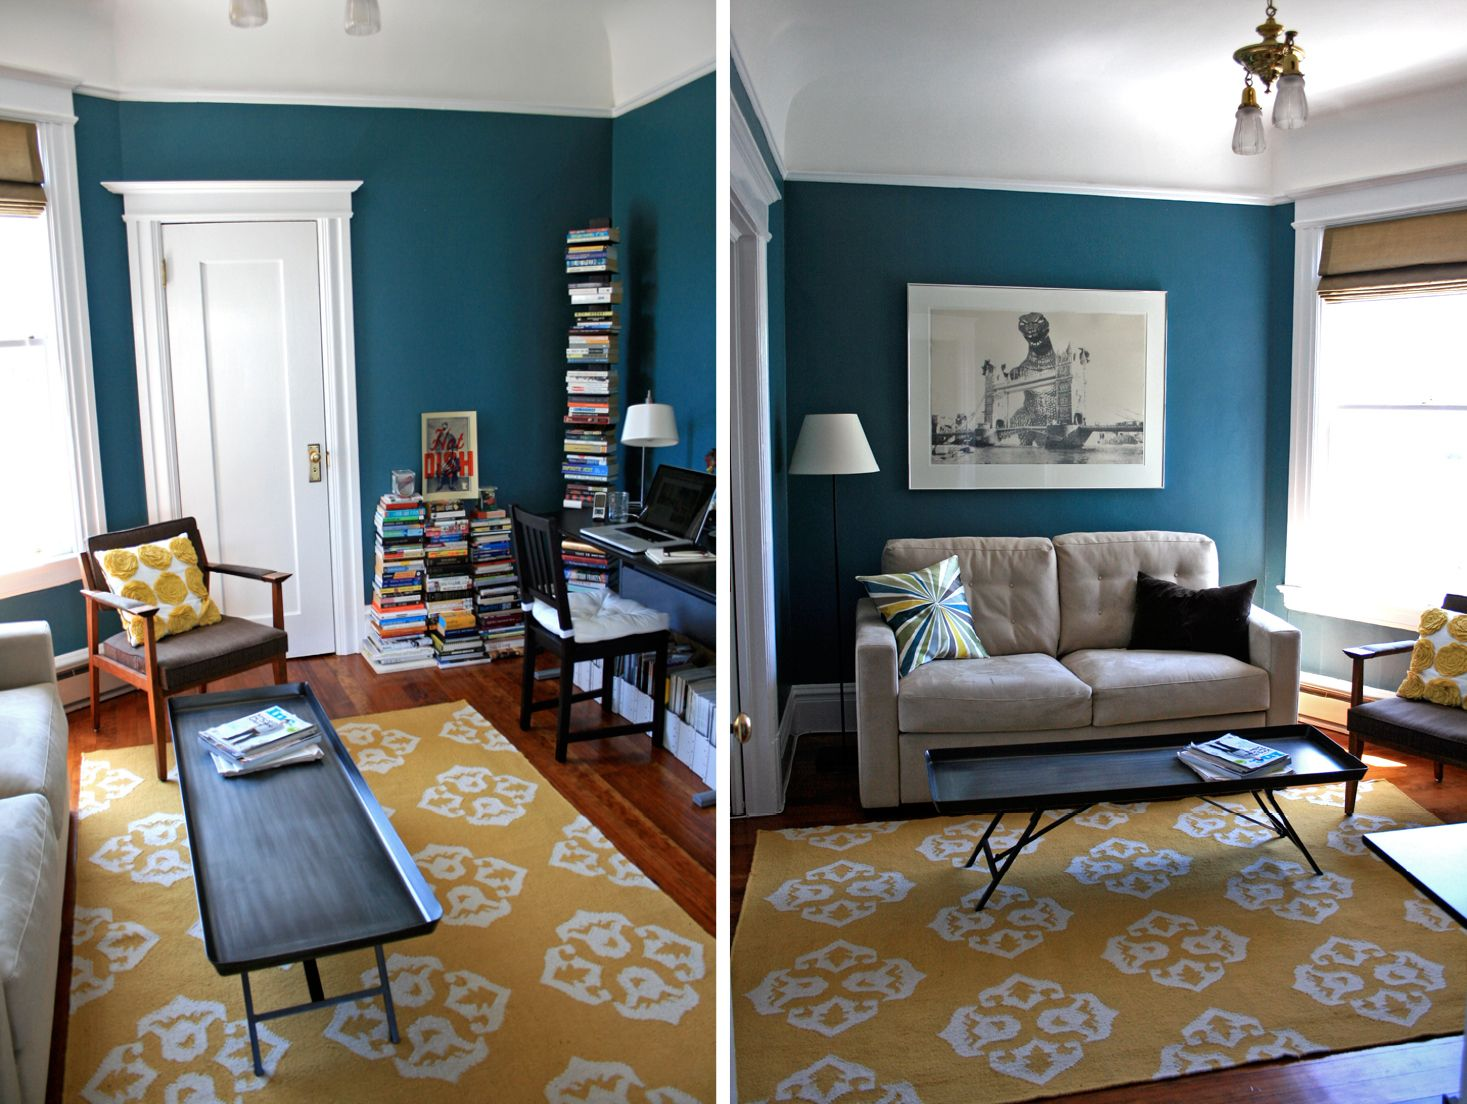 Teal and yellow living room - Teal Yellow I Think I Will Like This For The Living Room Like The Rug